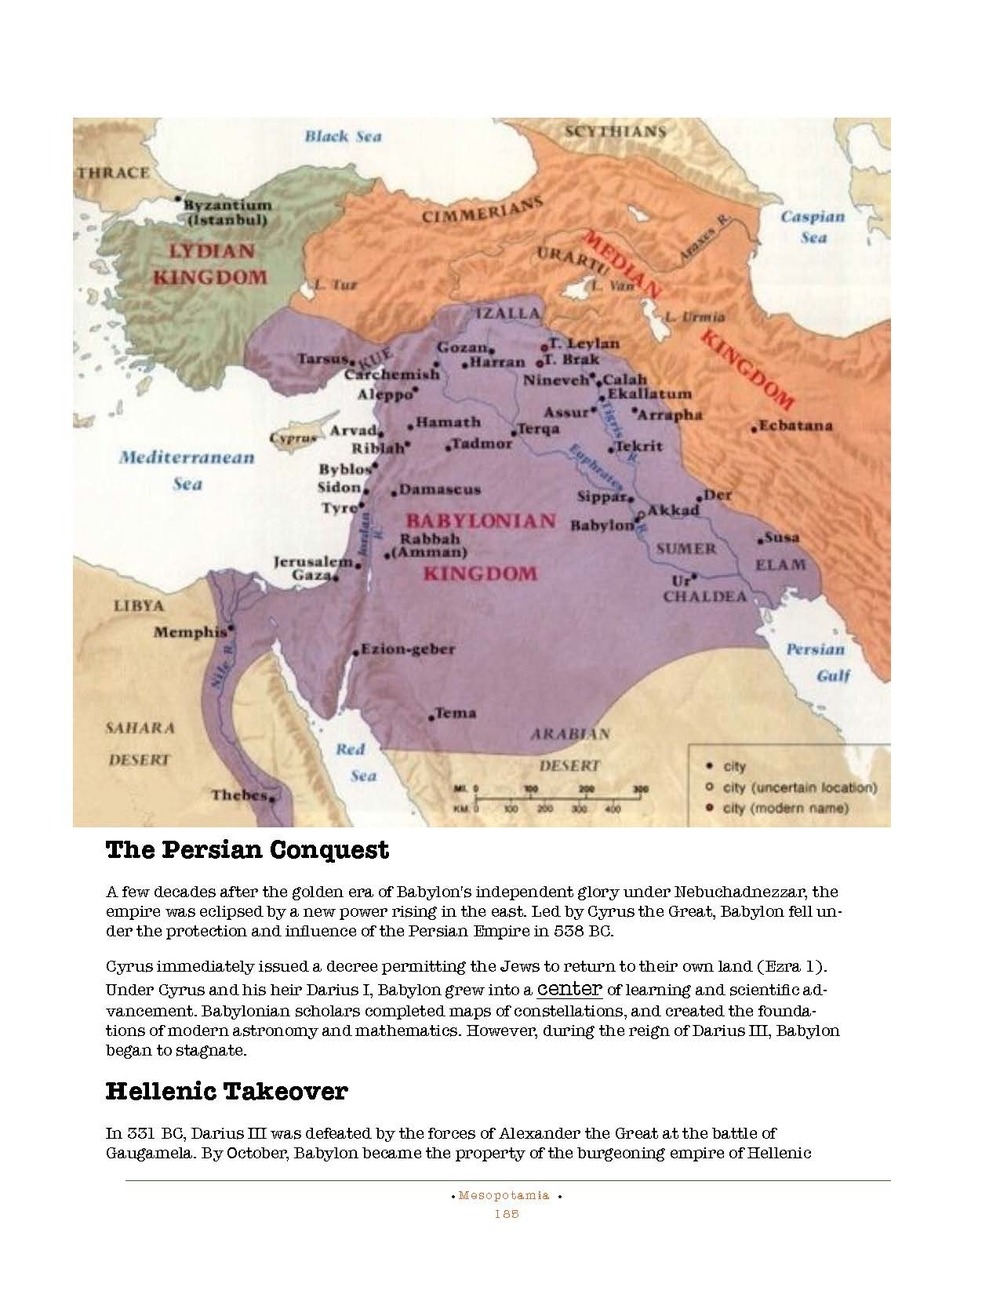 HOCE- Fertile Crescent Notes_Page_185.jpg